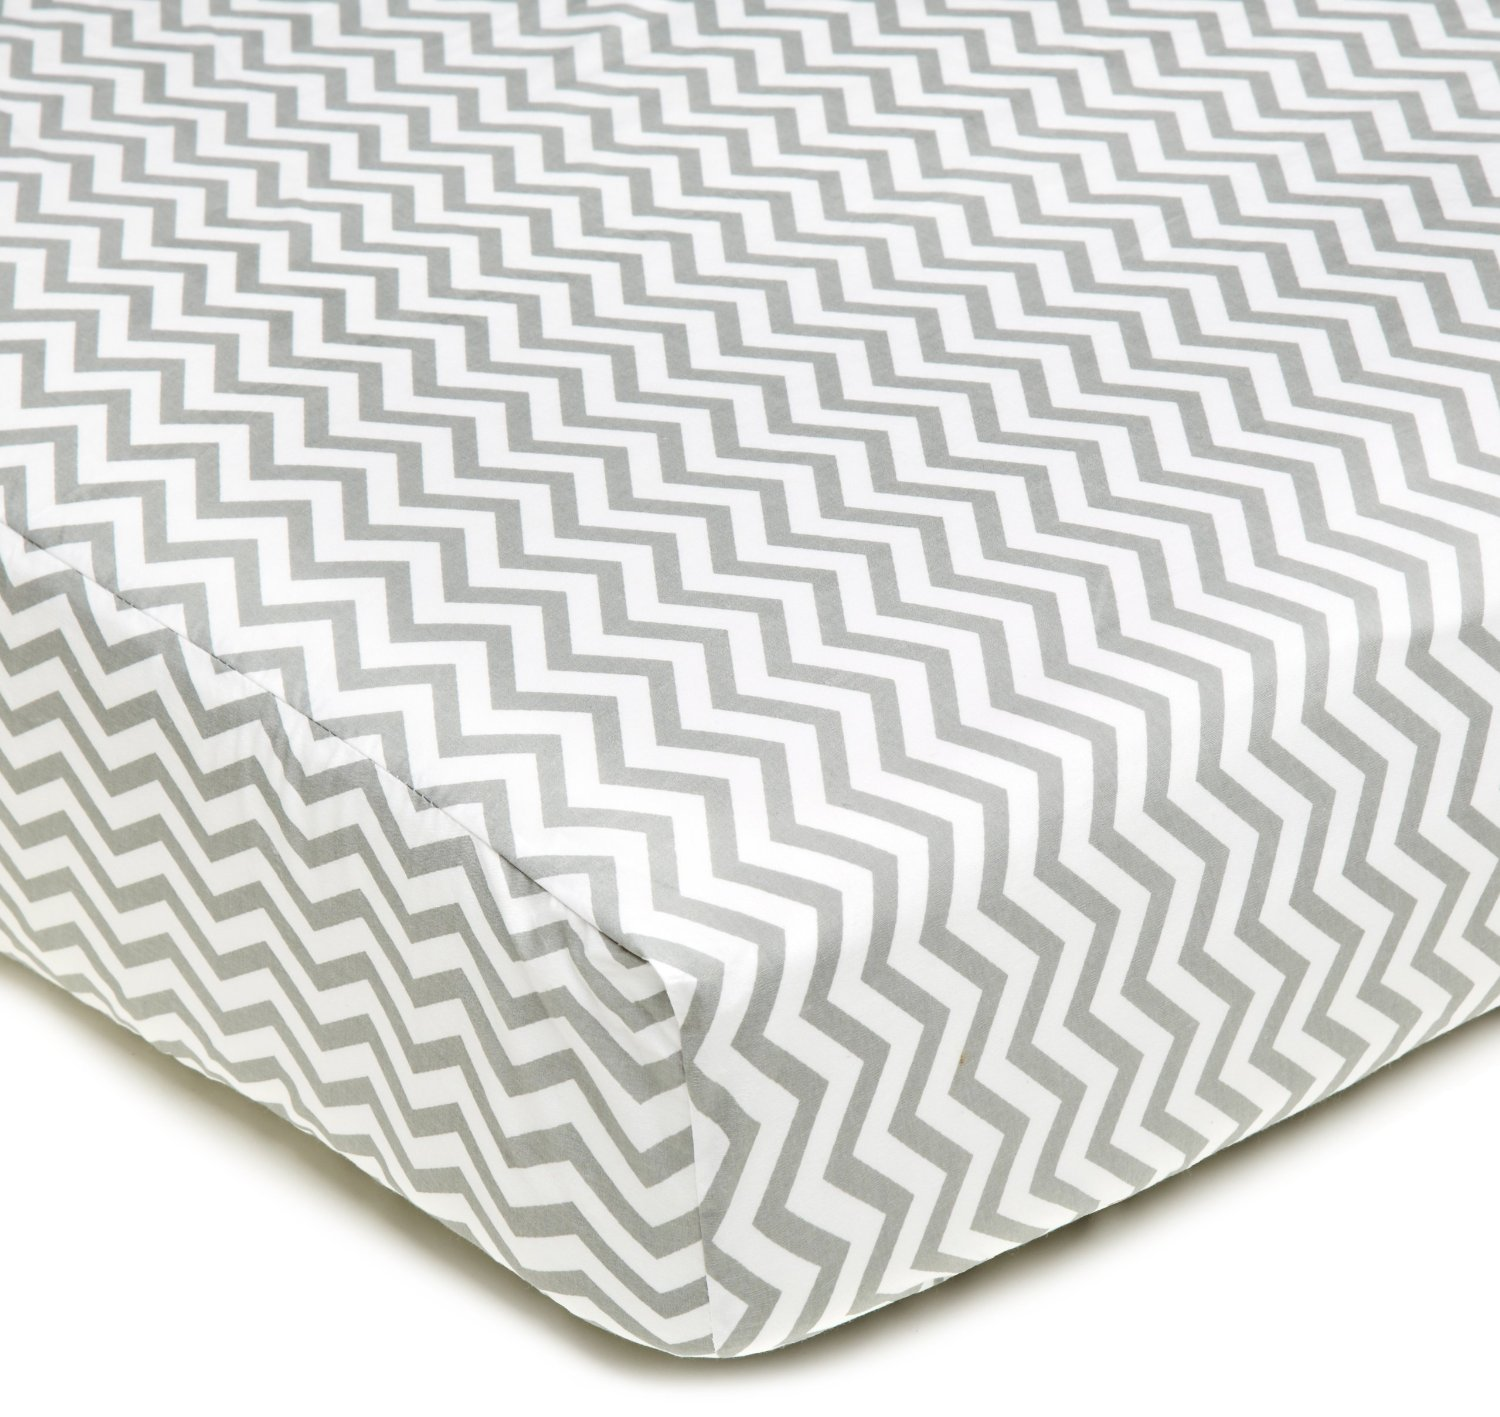 American Baby Company 100% Cotton Percale Crib Sheet - Gray Zigzag